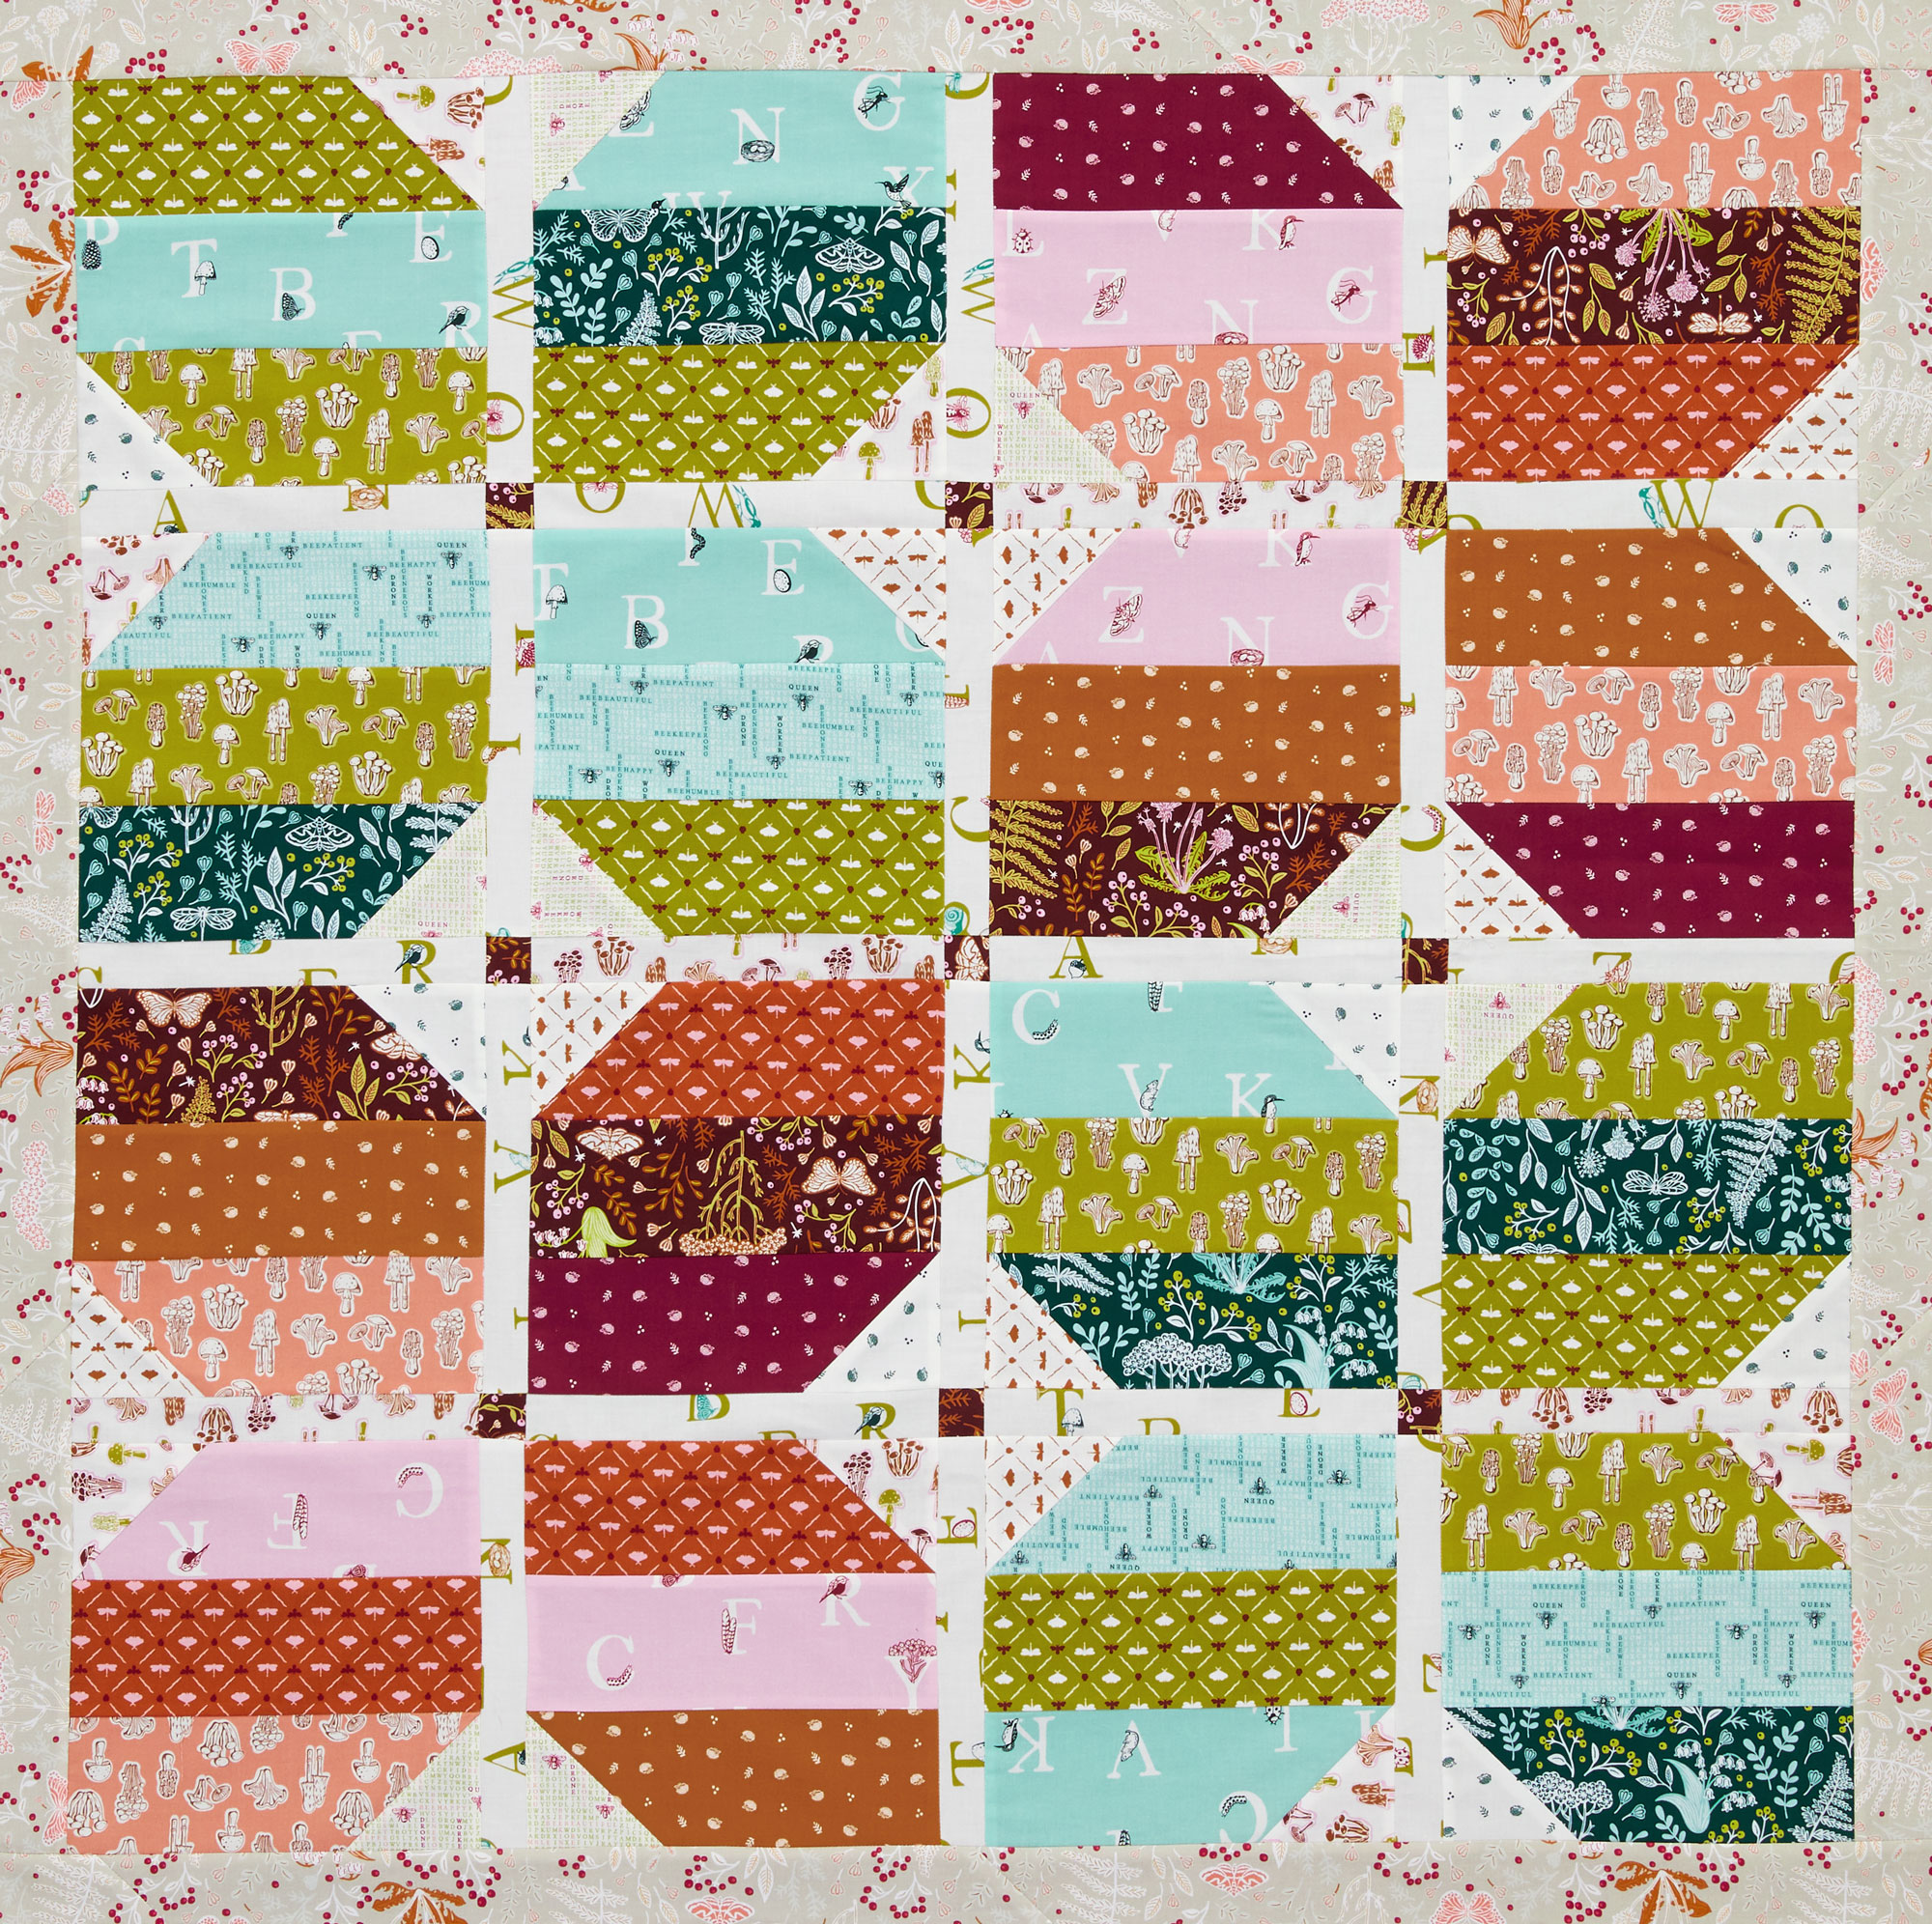 Opposites Attract Wall Quilt